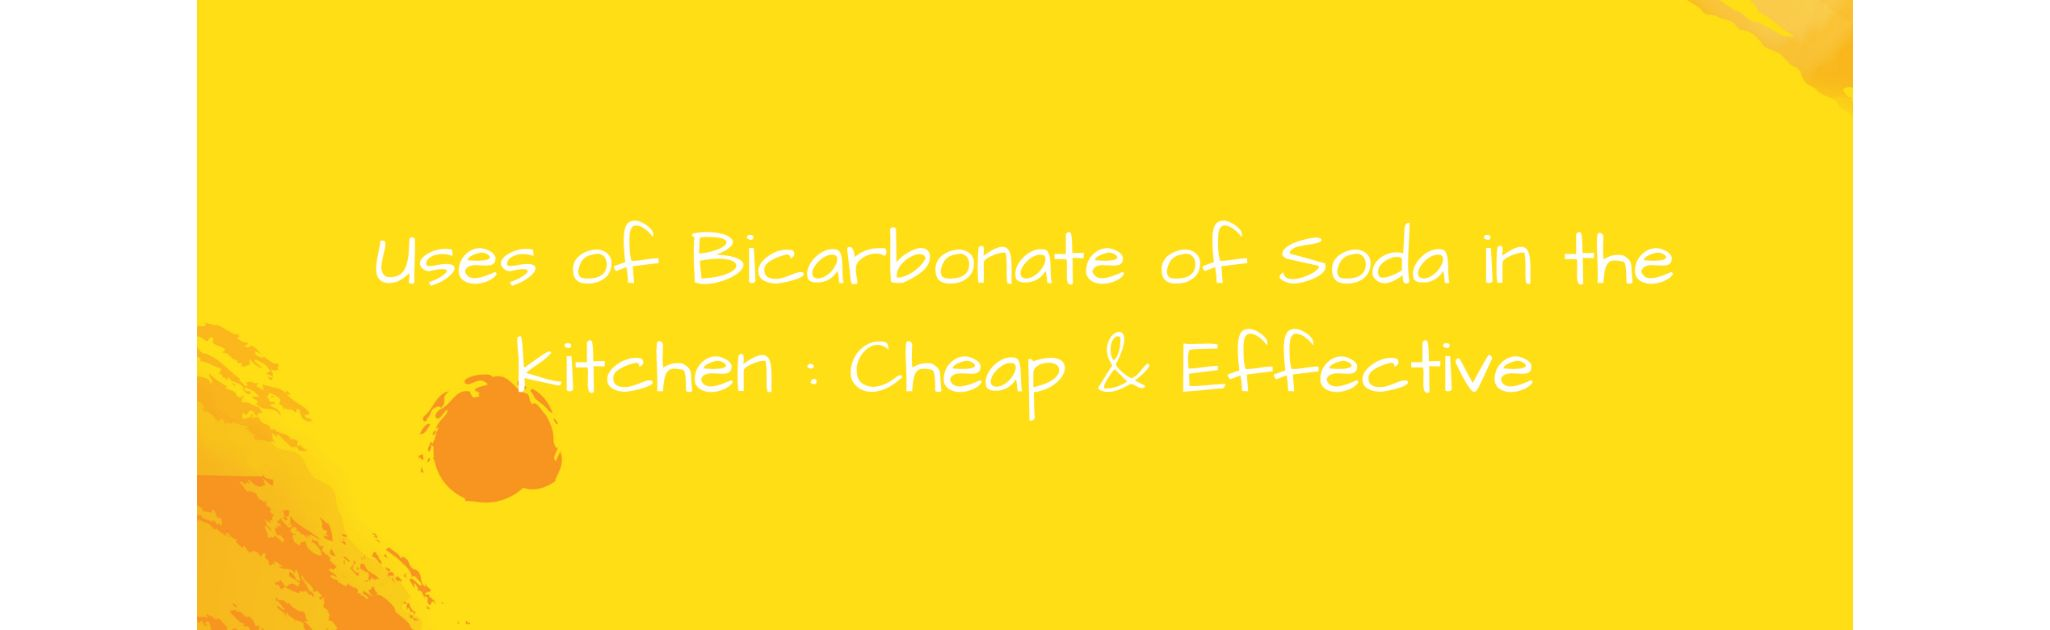 Simple, effective ways to use bicarbonate of soda in the kitchen